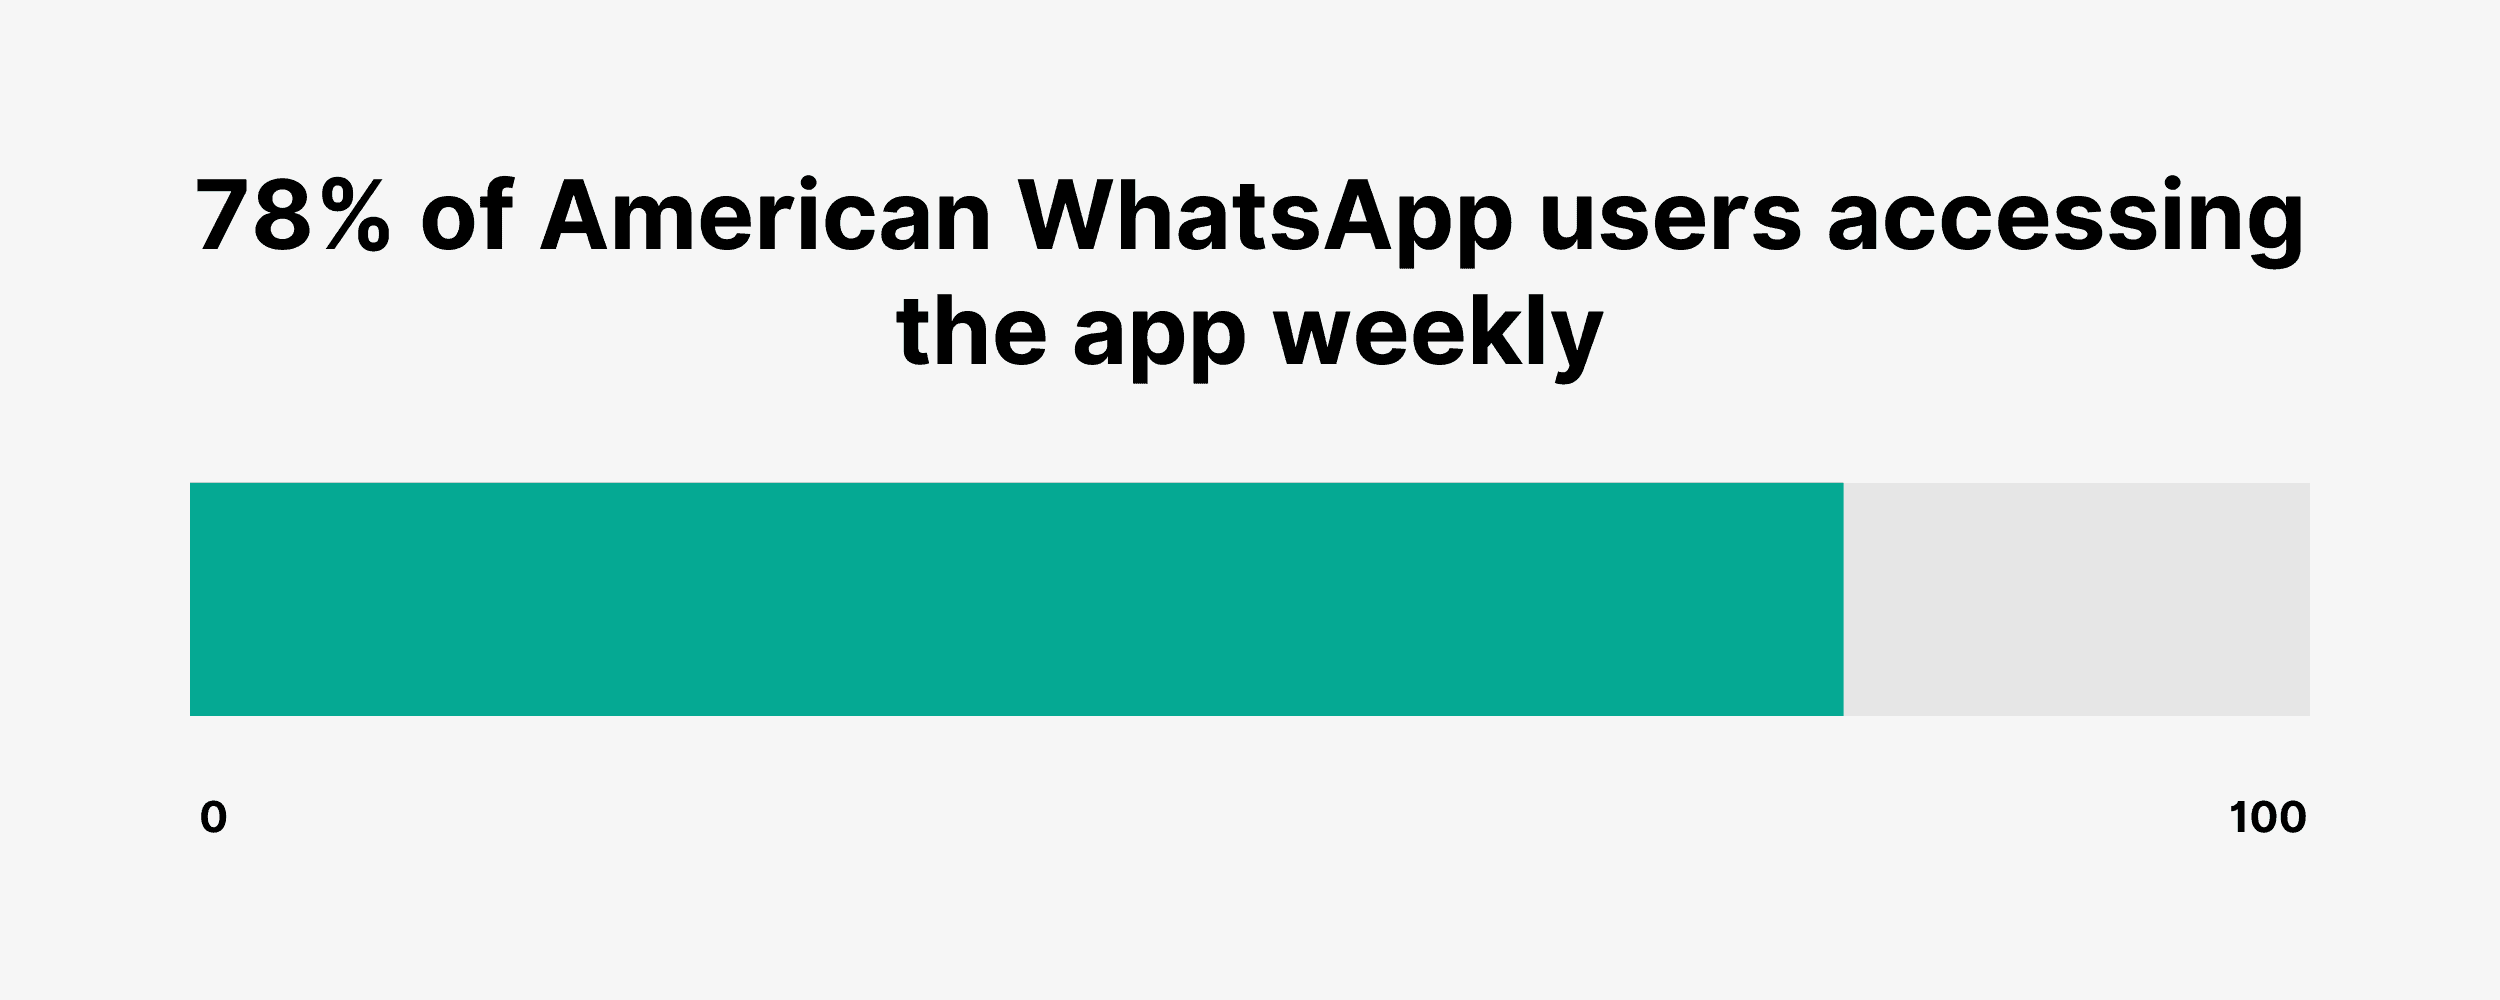 78% of American WhatsApp users accessing the app weekly